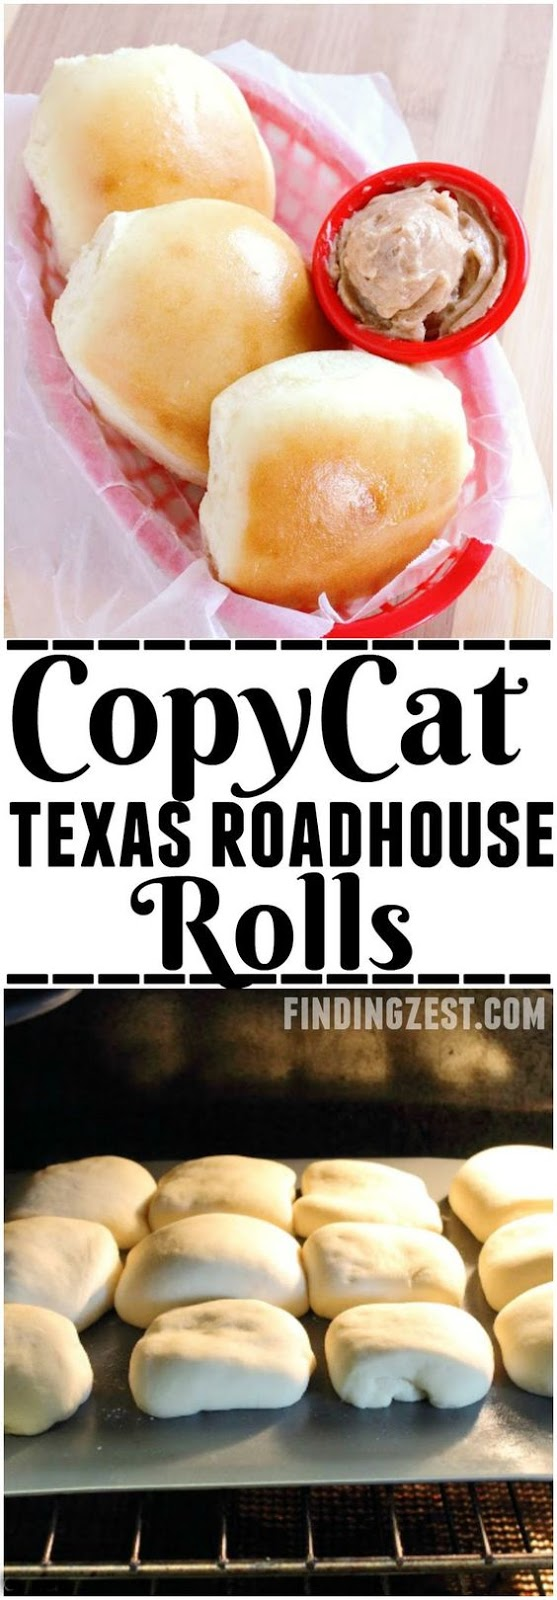 Copycat Texas Roadhouse Rolls and Cinnamon Butter Recipe